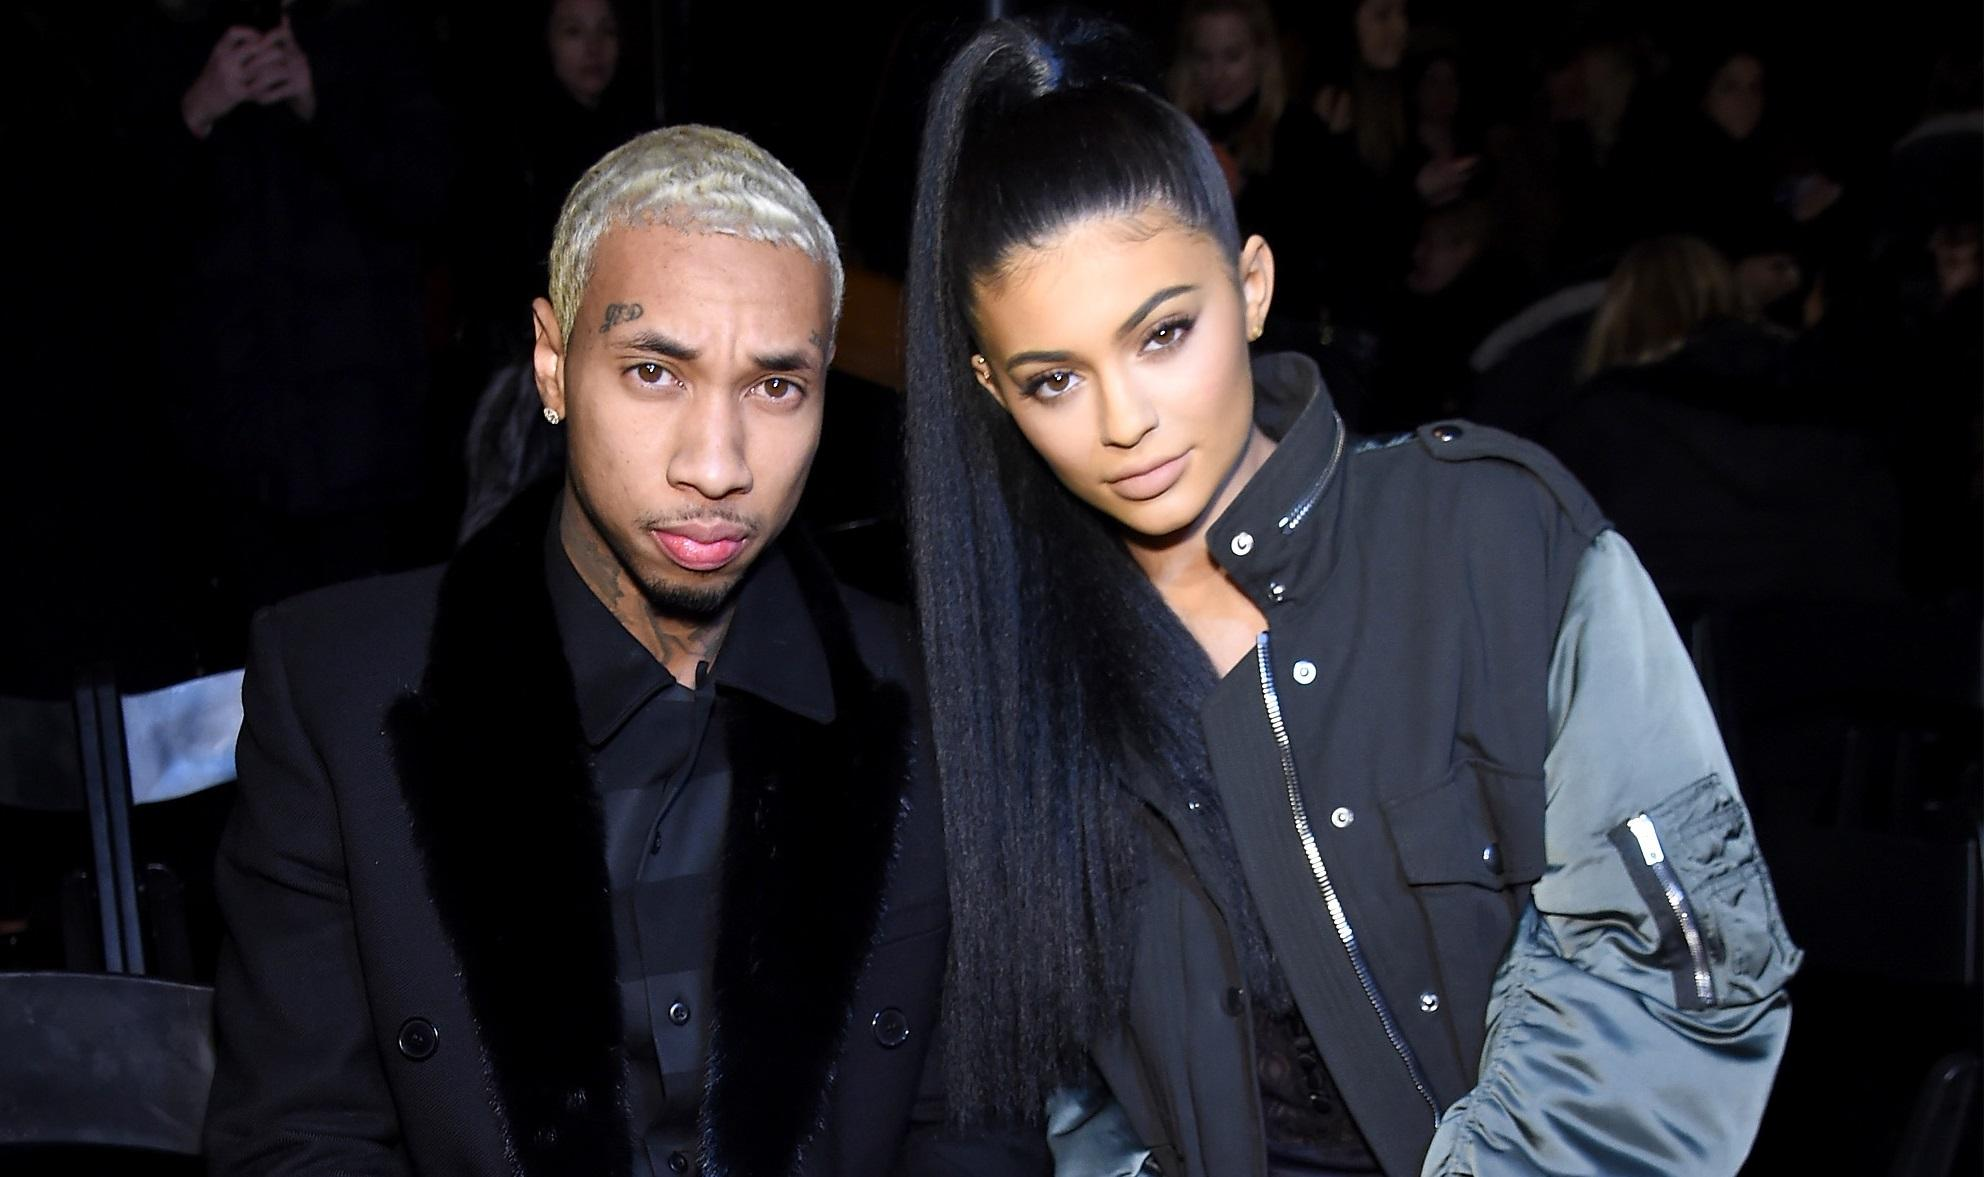 Kylie Jenner and Tyga back together